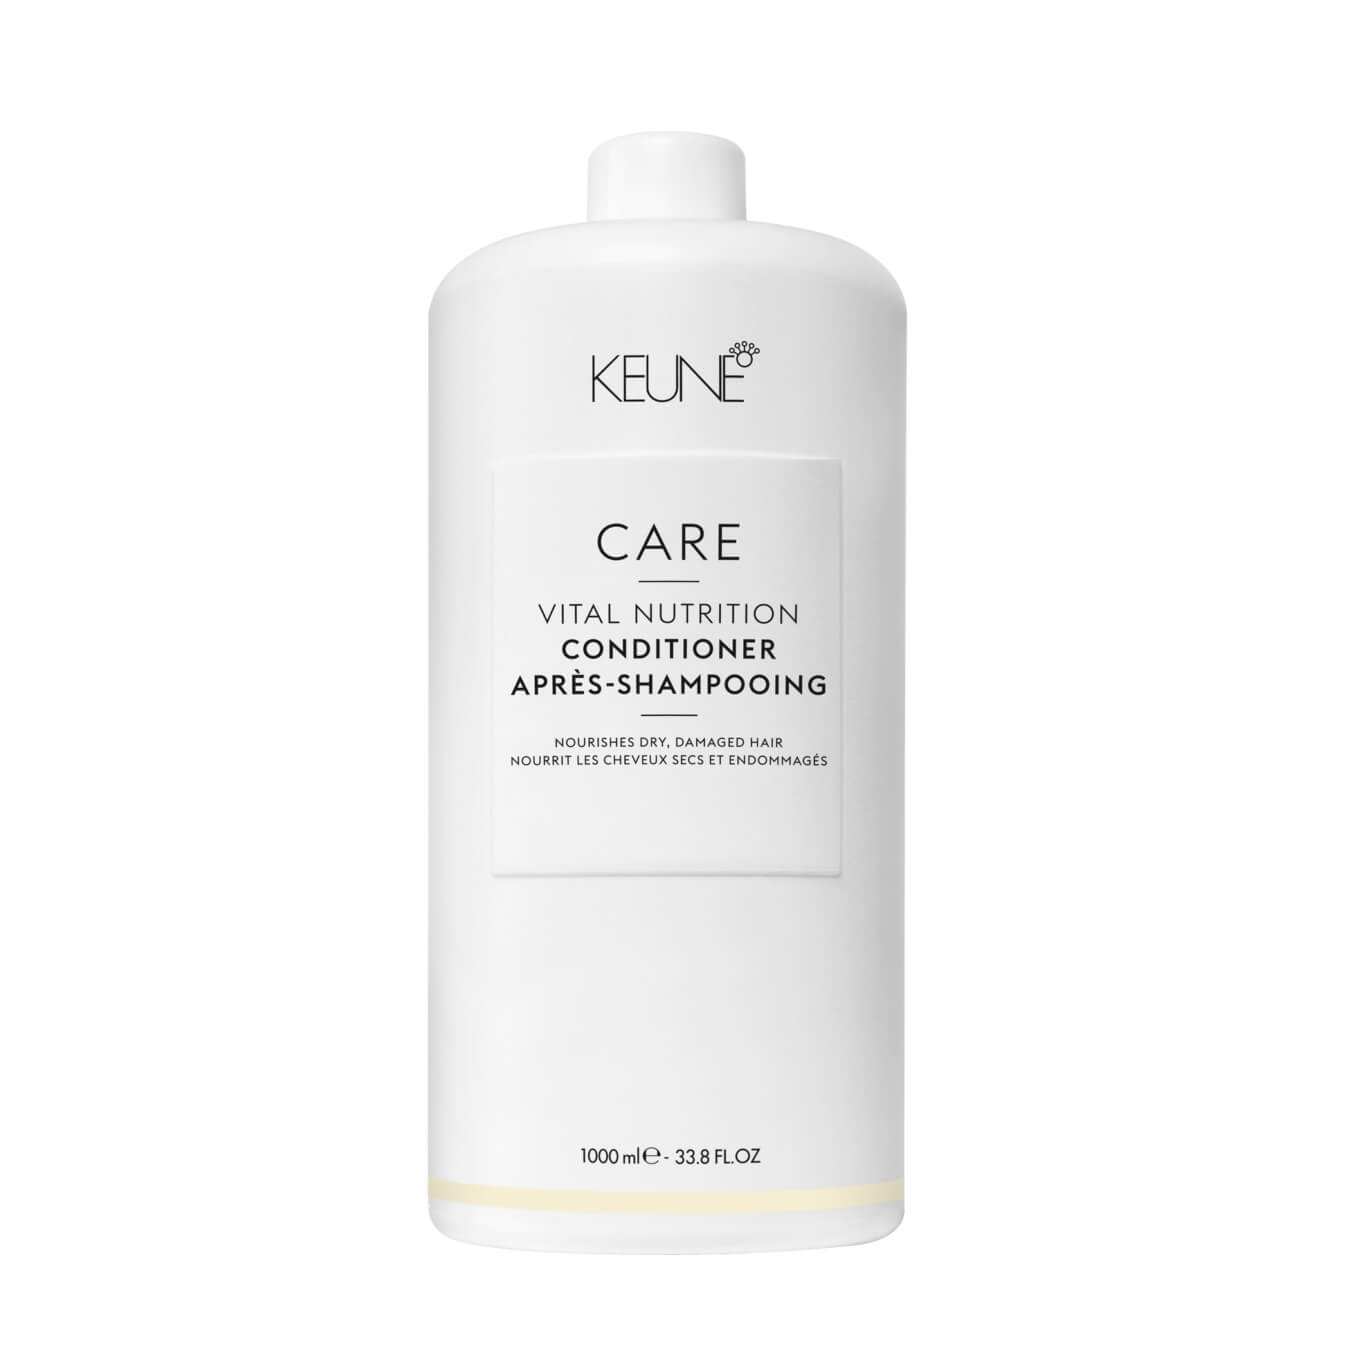 Koop Keune Care Vital Nutrition Conditioner 1000ml